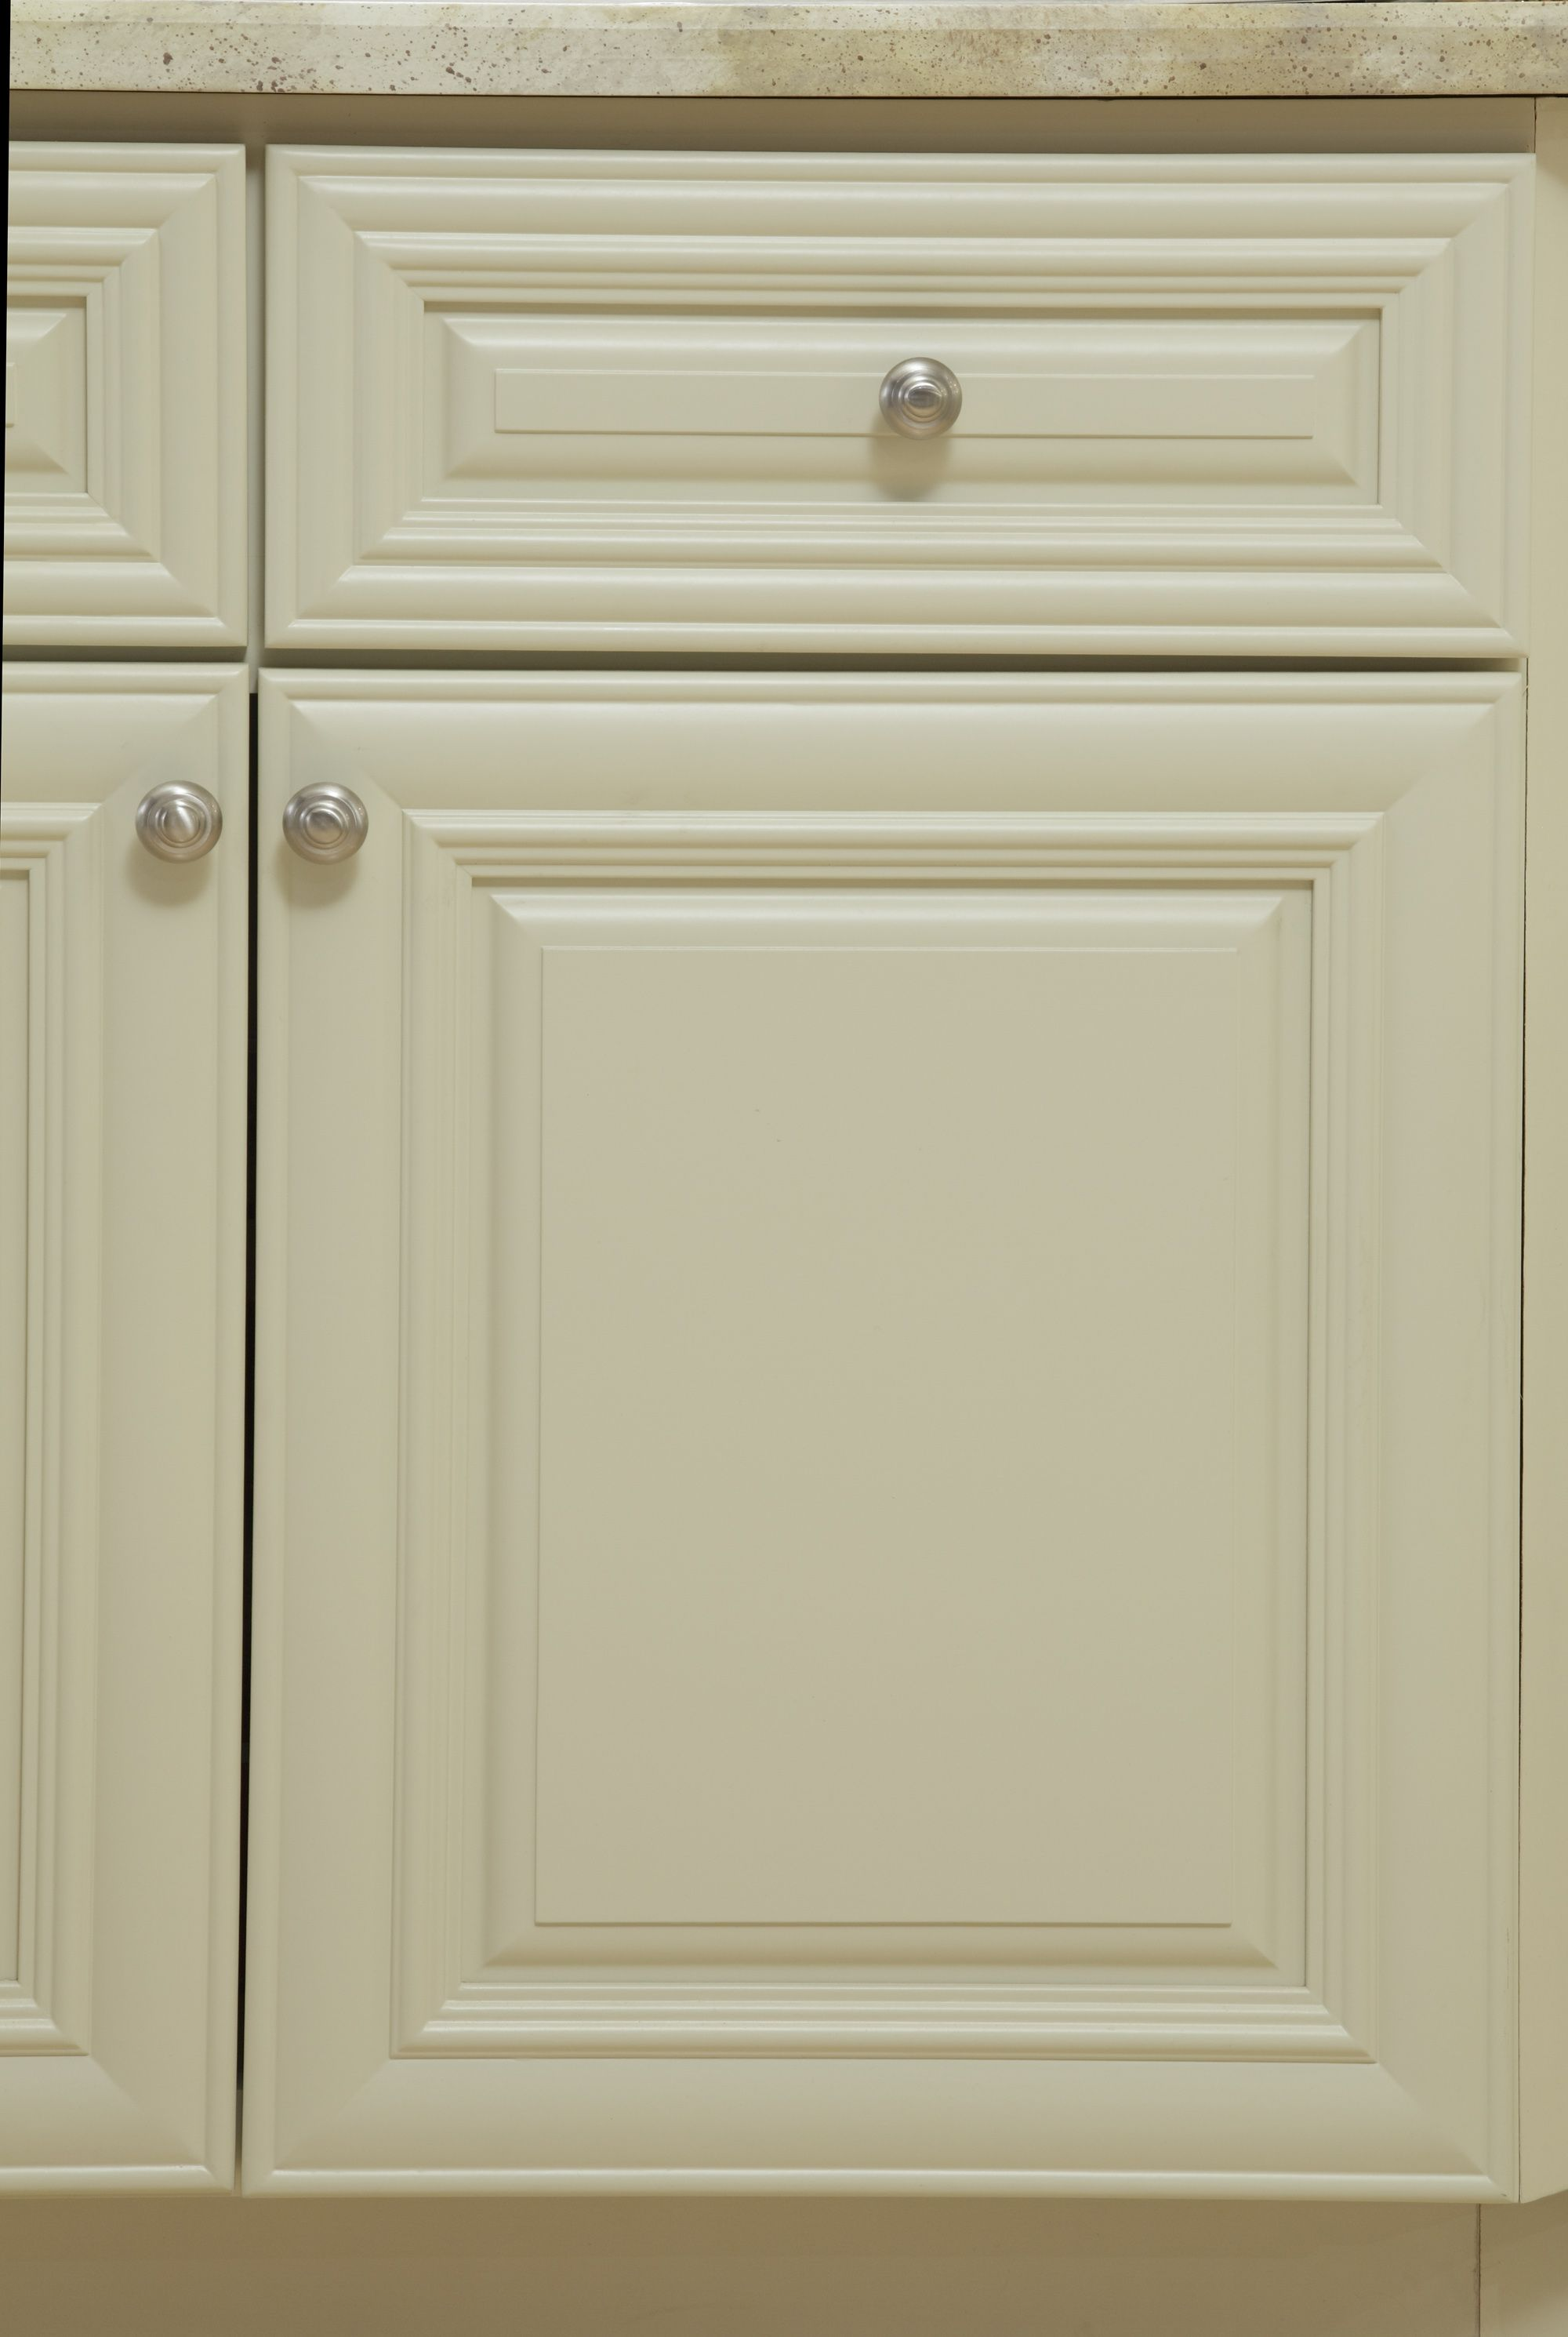 B Jorgsen & Co Victoria Ivory white kitchen features soft